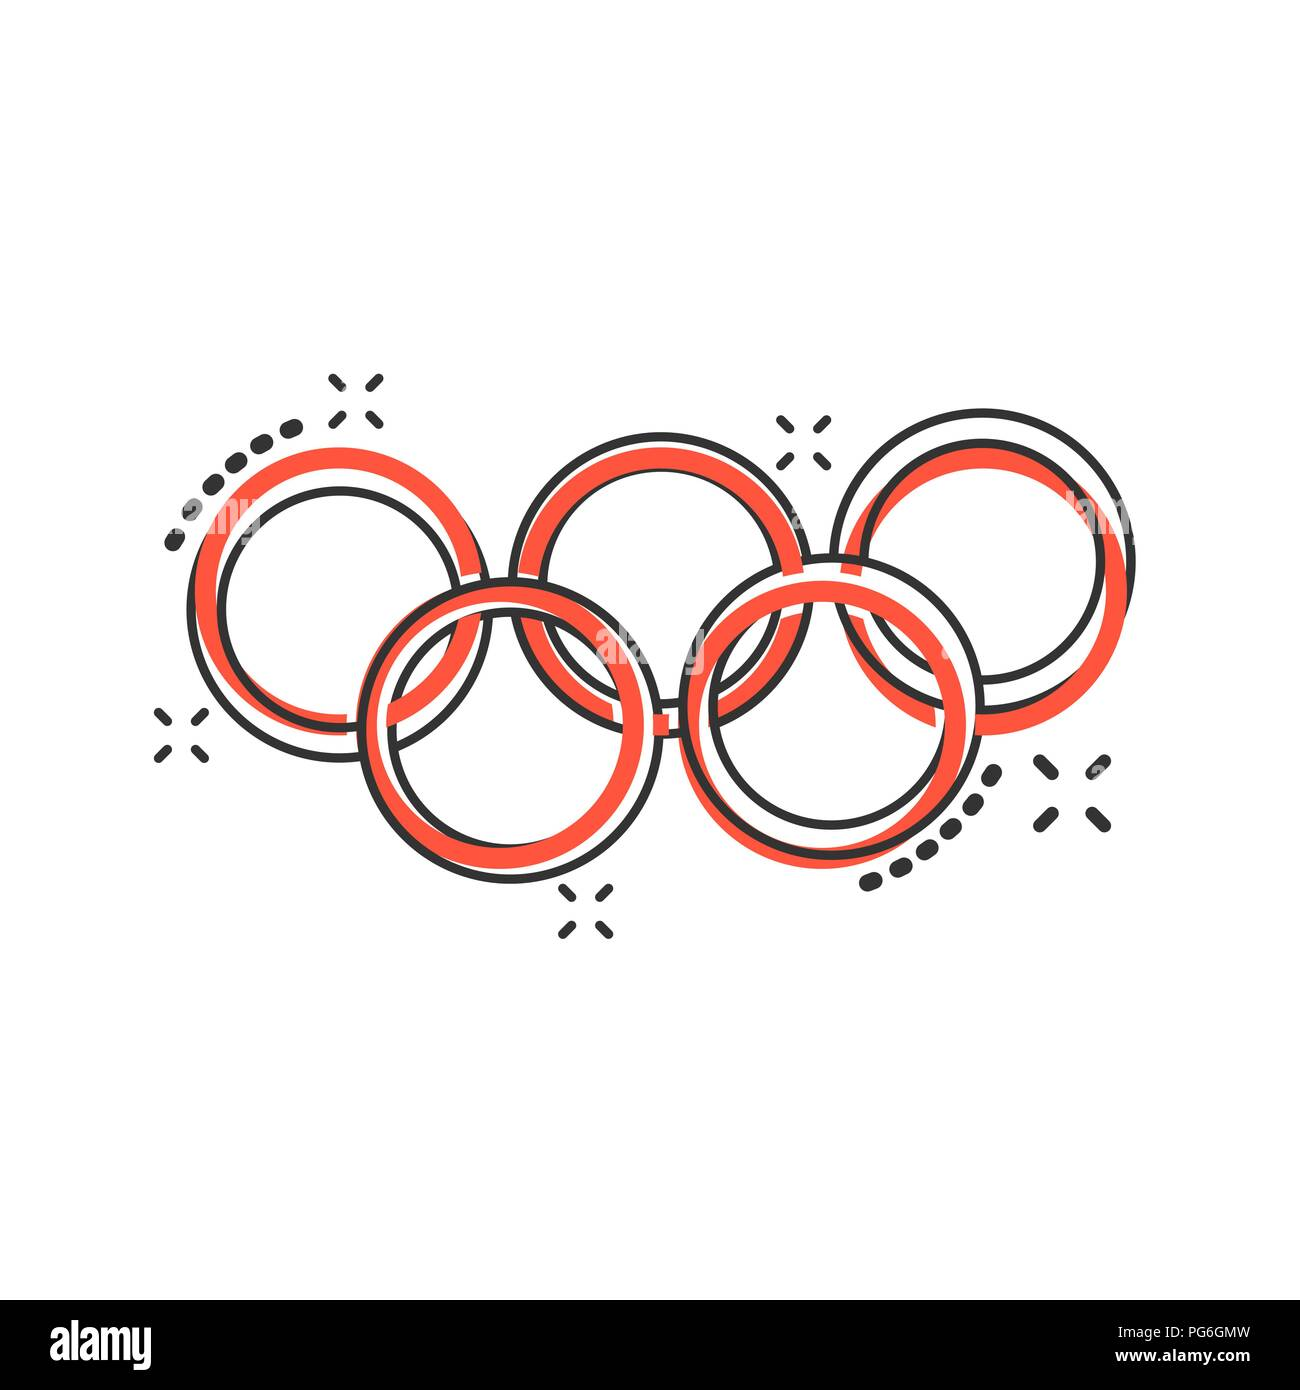 Vector cartoon olympic games rings icon in comic style. Olympiad illustration pictogram. Olympic business splash effect concept. - Stock Vector